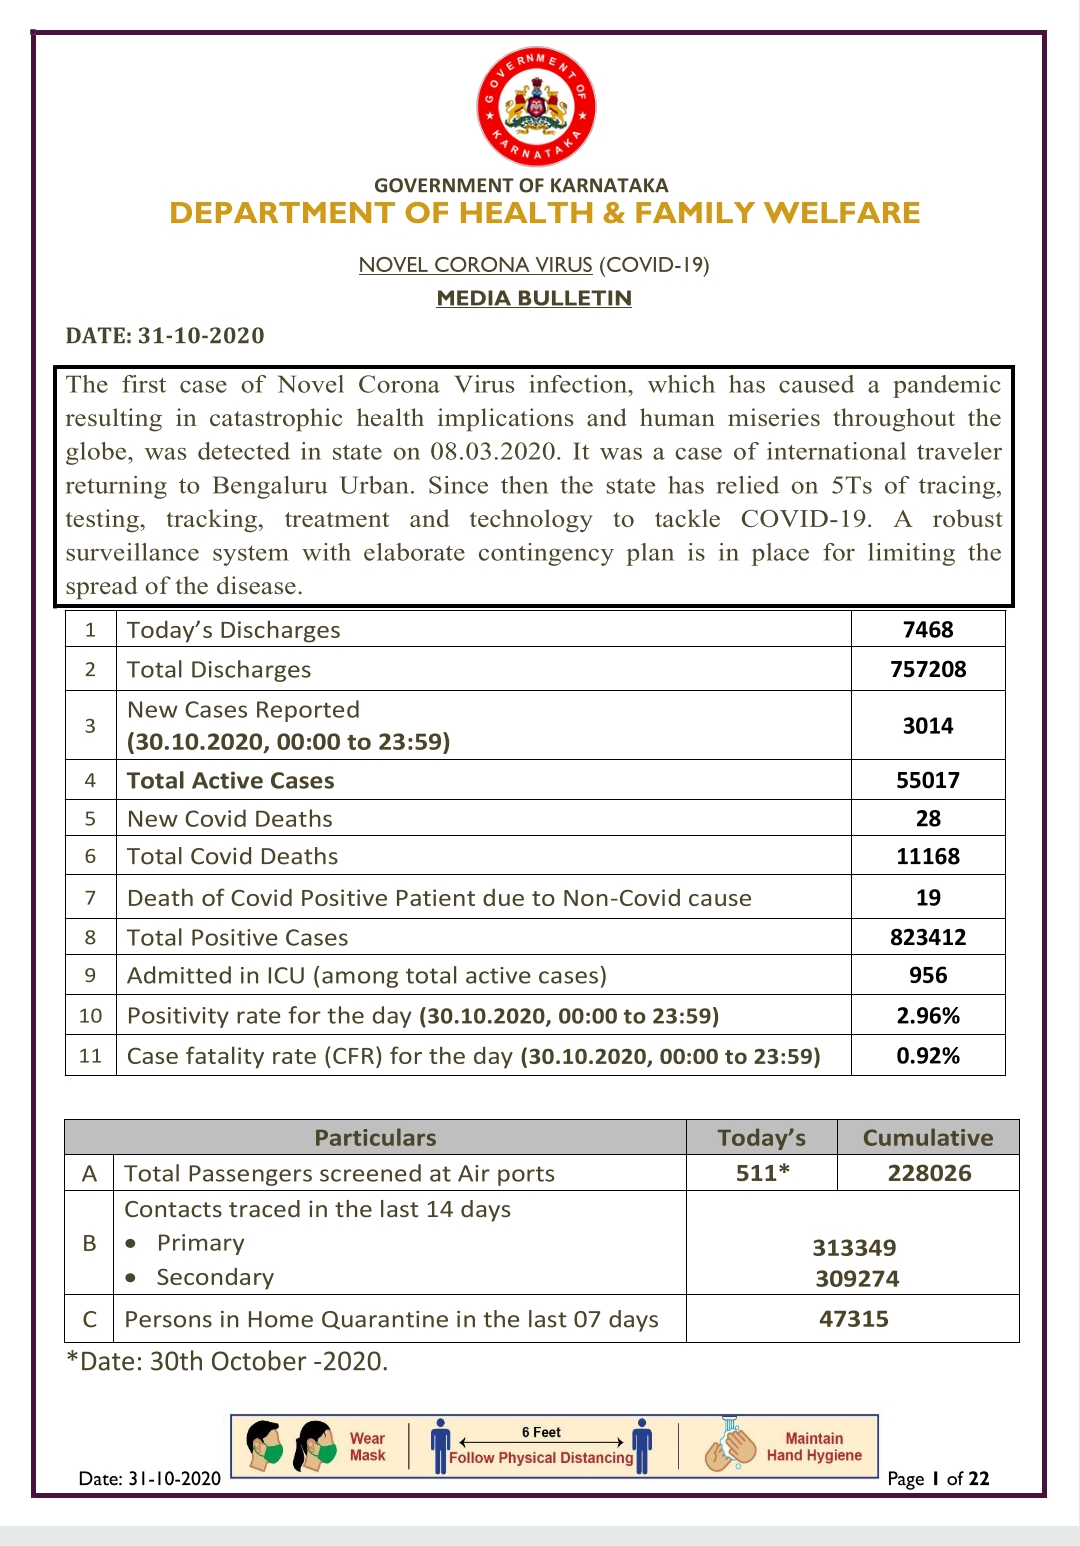 31-10-2020 Today kovid-19 health bulletin